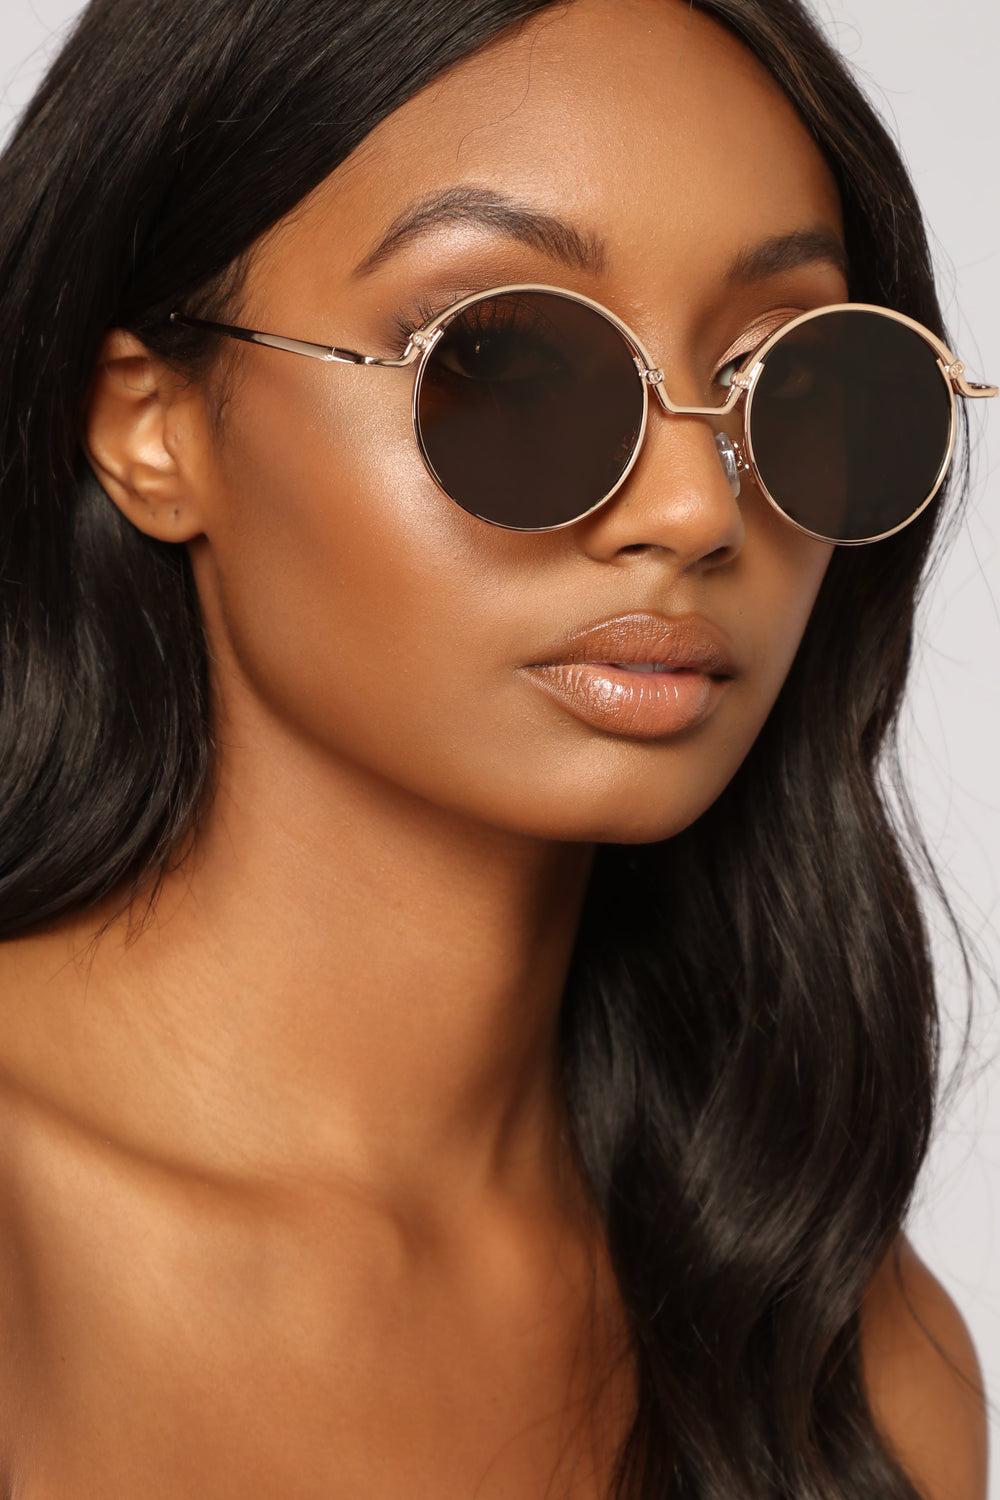 Low Rider Round Sunglasses - Gold